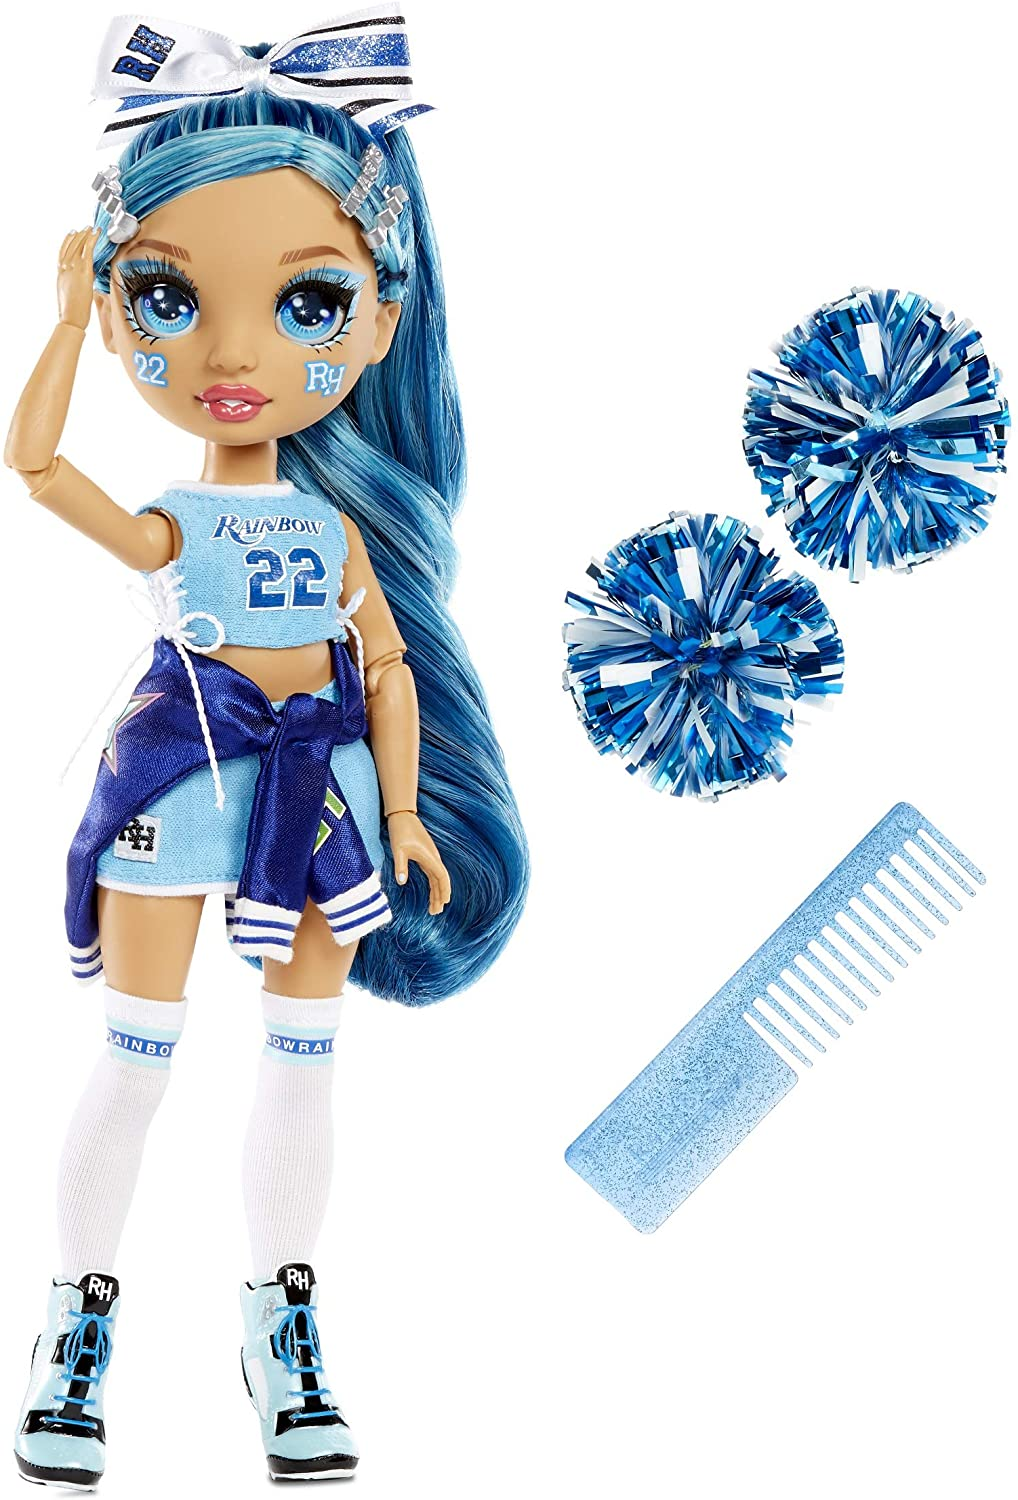 Designer Clothes Sunny Madison Toys for Kids Ages 6-12 Years Old Rainbow High Cheer Collectible Fashion Dolls Rainbow High Cheer Series Yellow Pom Poms /& Cheerleader Doll